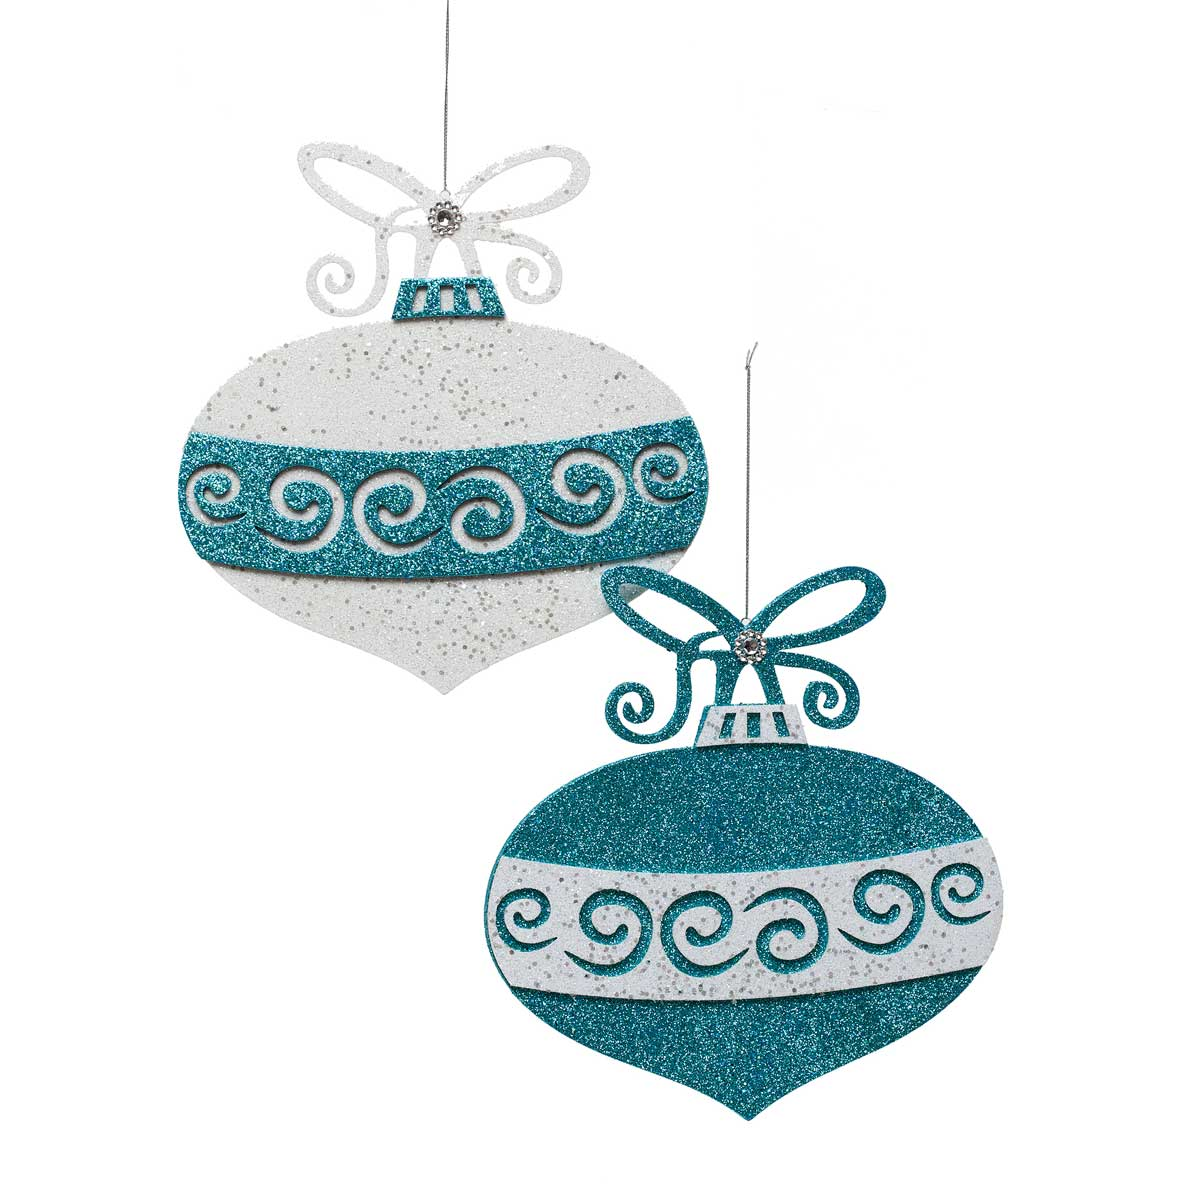 "RETRO CUTOUT ORNAMENT 9.5""X10"" *70sp"